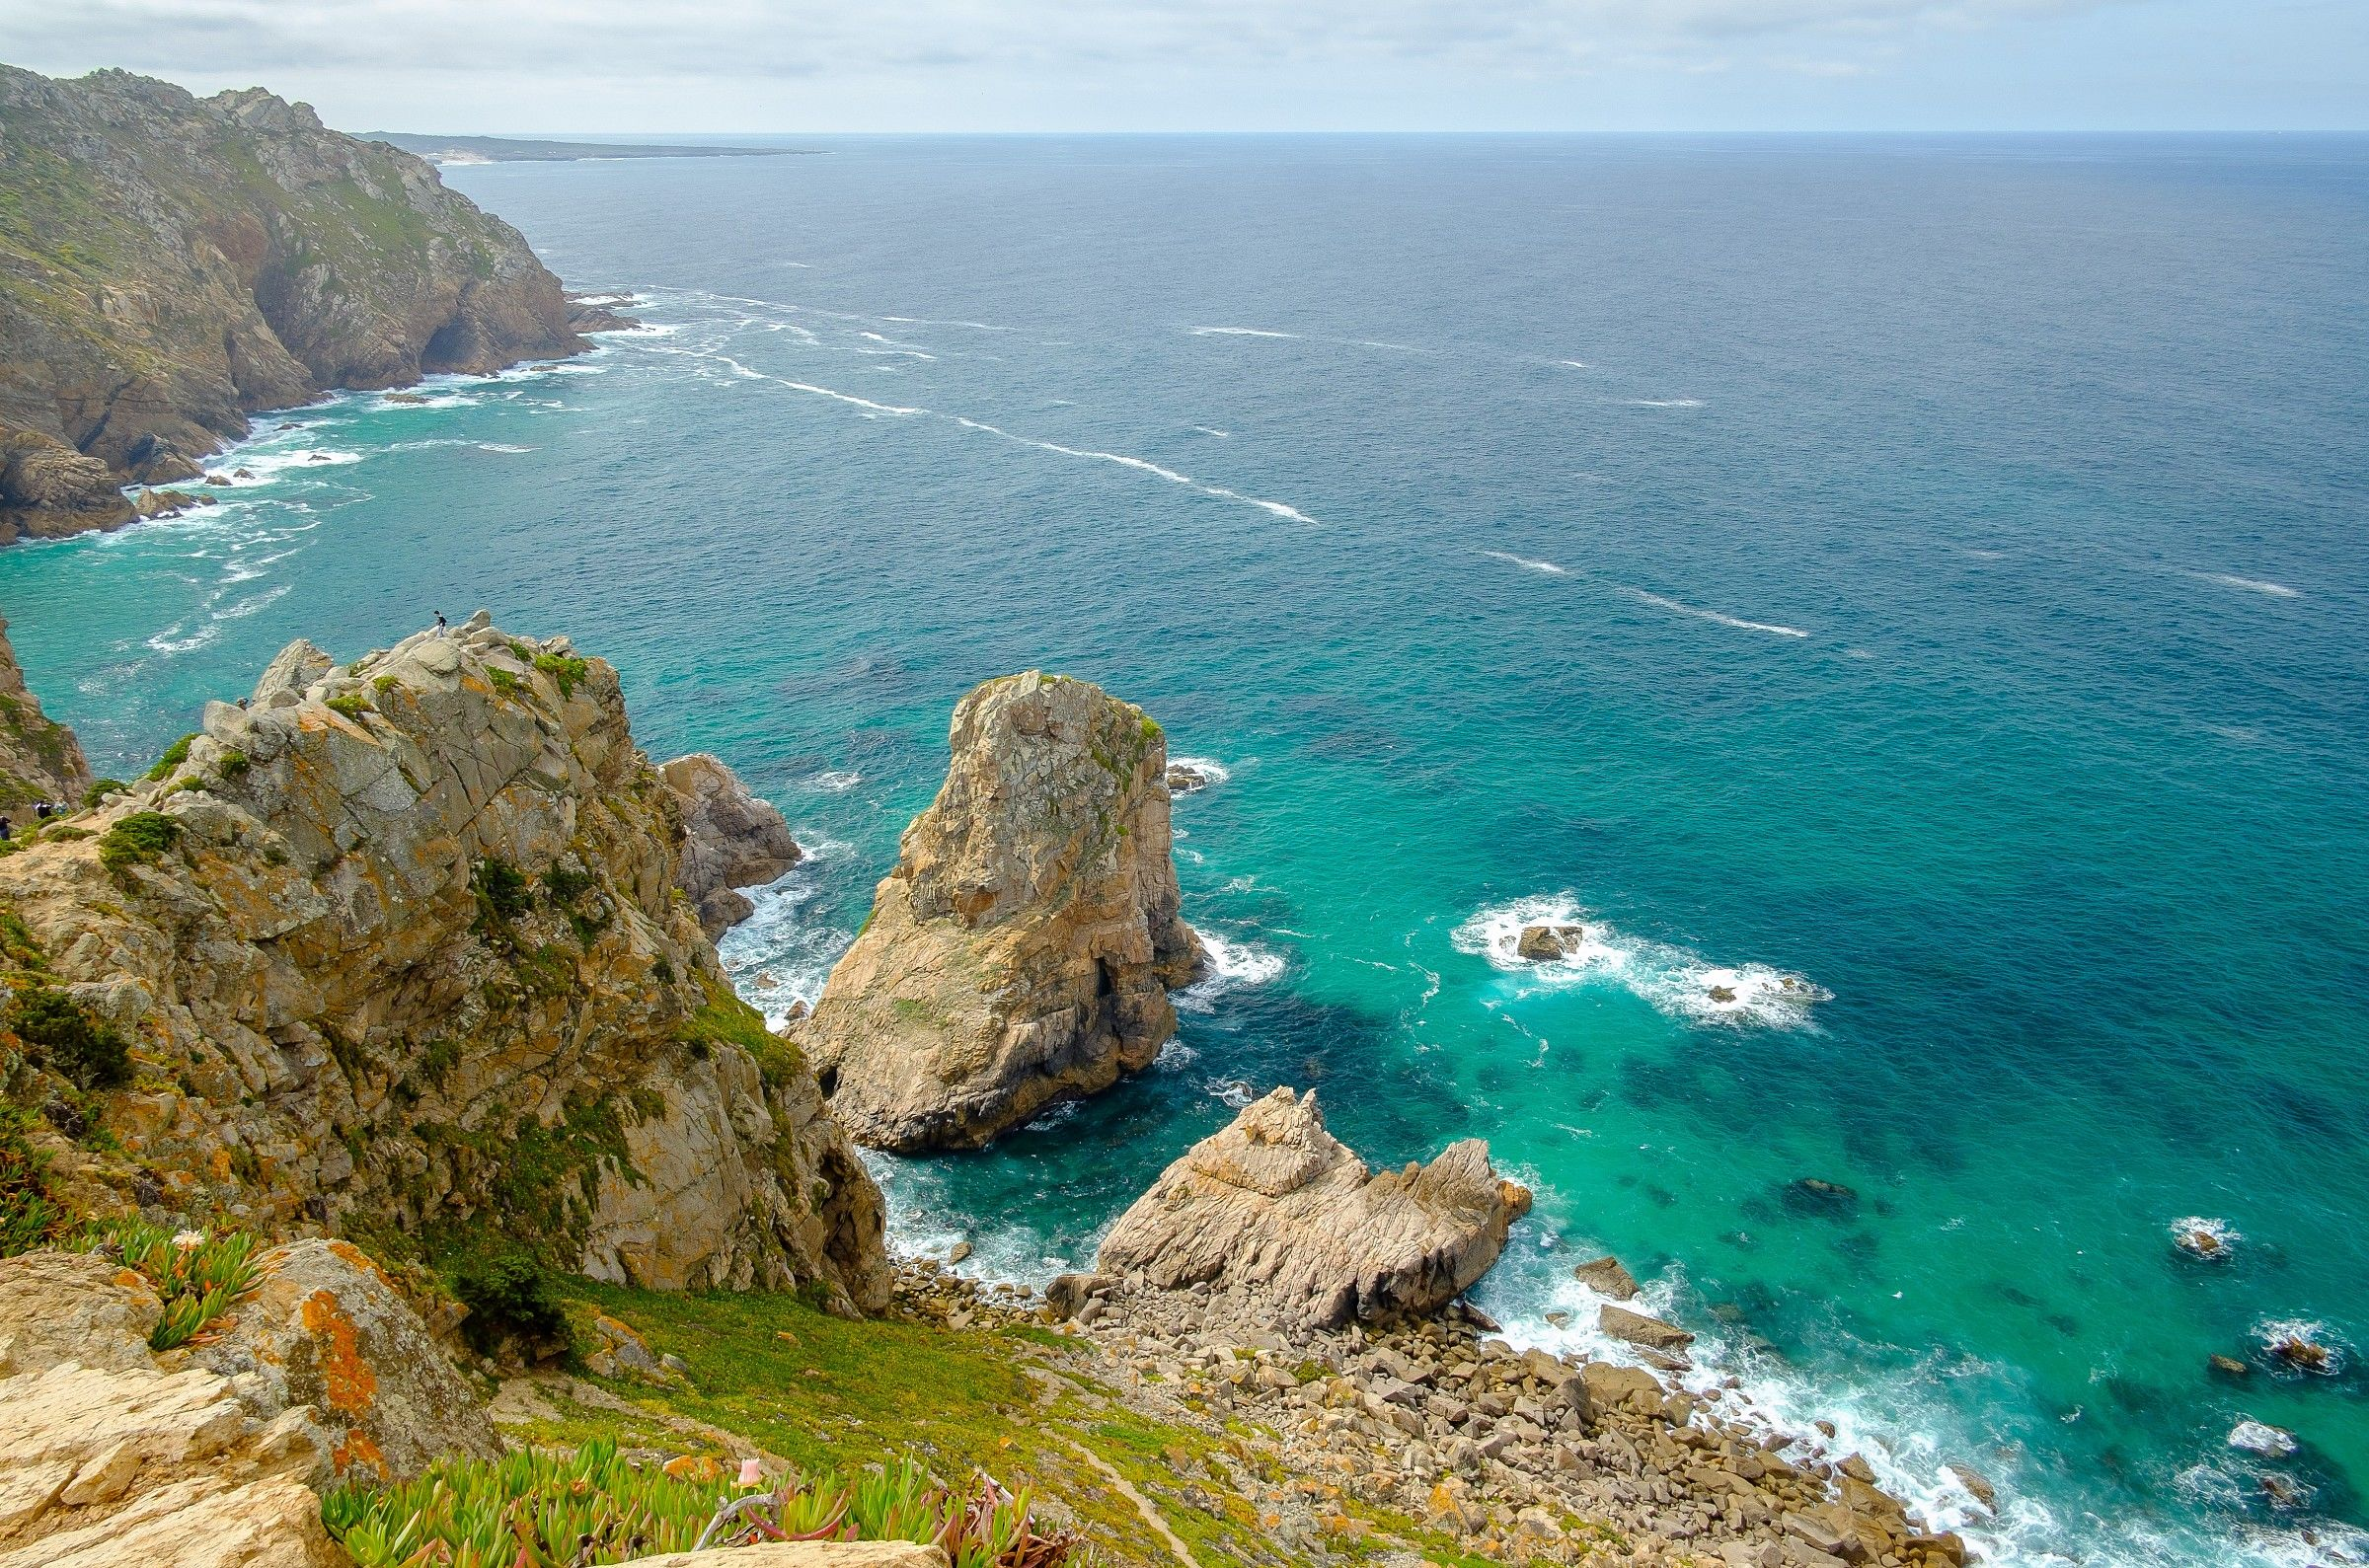 Cabo da Roca, the westernmost point of Europe...